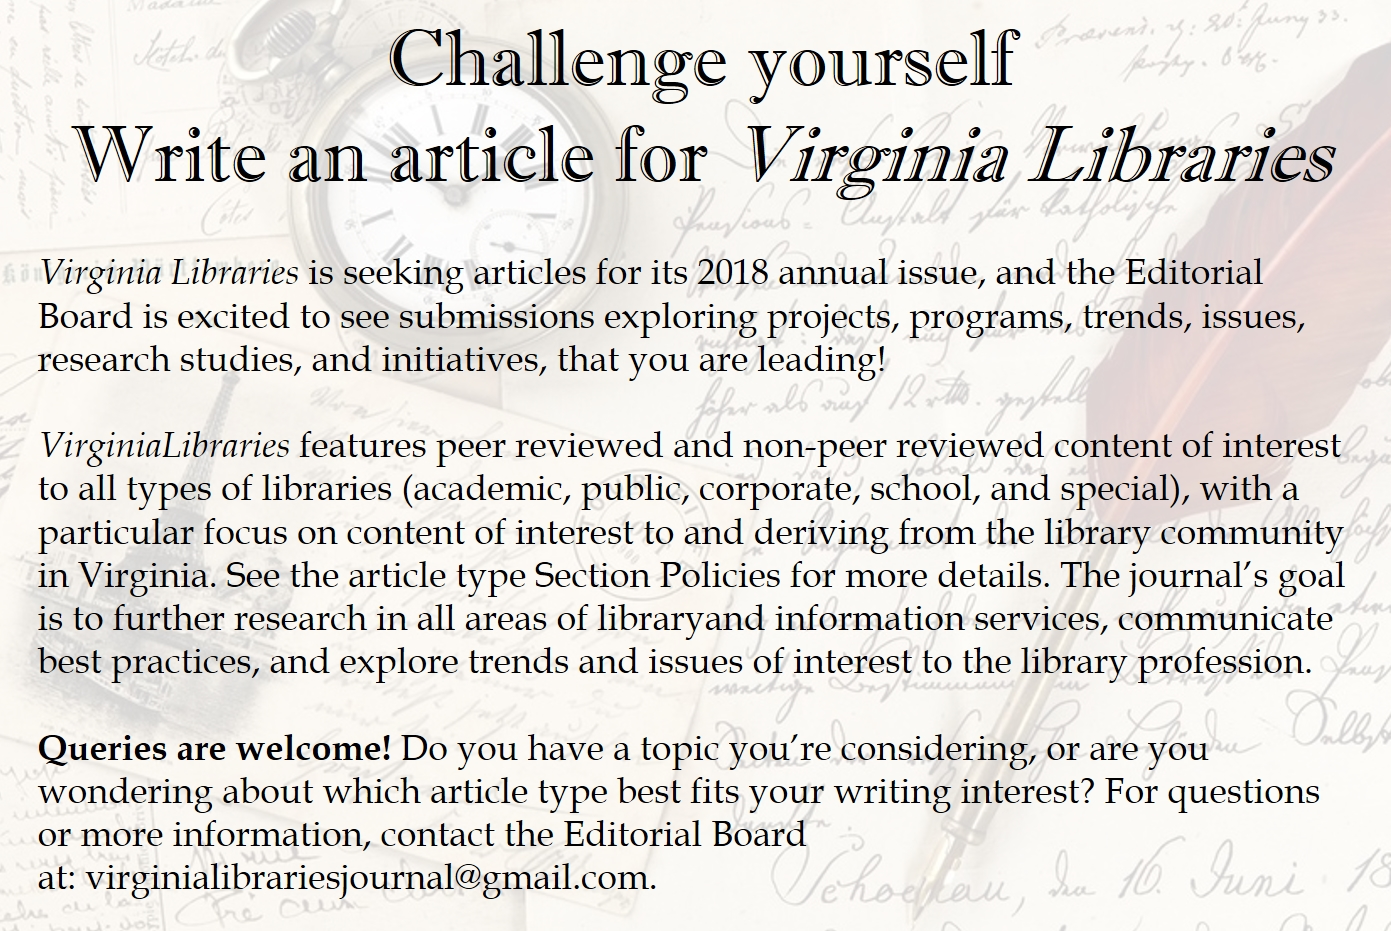 Challenge Yourself: Write for Virginia Libraries.  Virginia Libraries is seeking articles for its 2018 annual issue, and the Editorial Board is excited to see submissions exploring projects, programs, trends, issues, research studies, and initiatives, that you are leading!  Virginia Libraries features peer reviewed and non-peer reviewed content of interest to all types of libraries (academic, public, corporate, school, and special), with a particular focus on content of interest to and deriving from the library community in Virginia. The journal's goal is to further research in all areas of library and information services, communicate best practices, and explore trends and issues of interest to the library profession.  Queries are welcome! Do you have a topic you're considering, or are you wondering about which article type best fits your writing interest? For questions or more information, contact the Editorial Board at: virginialibrariesjournal@gmail.com.